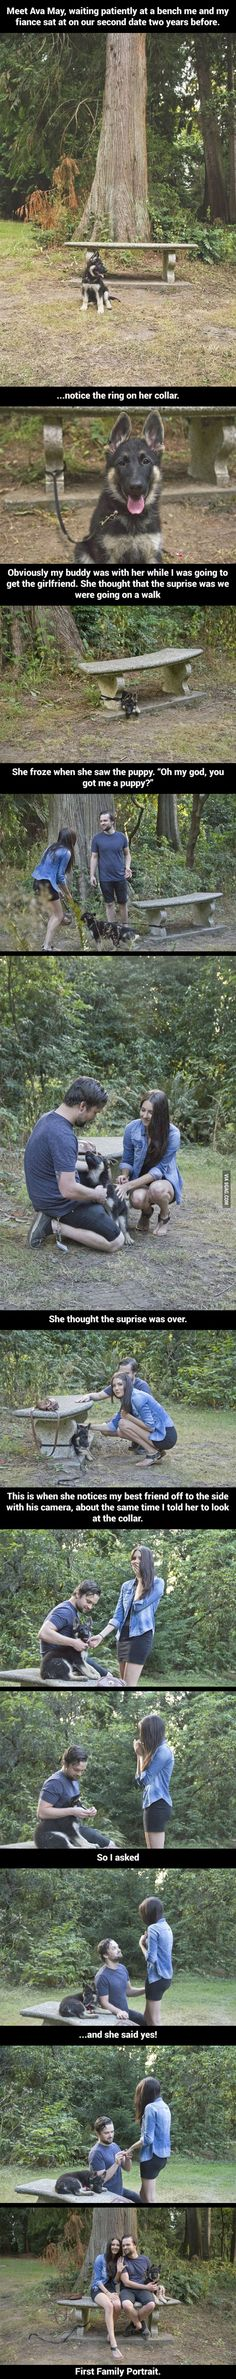 Omg. I just died. A puppy AND an engagement ring. Yes.